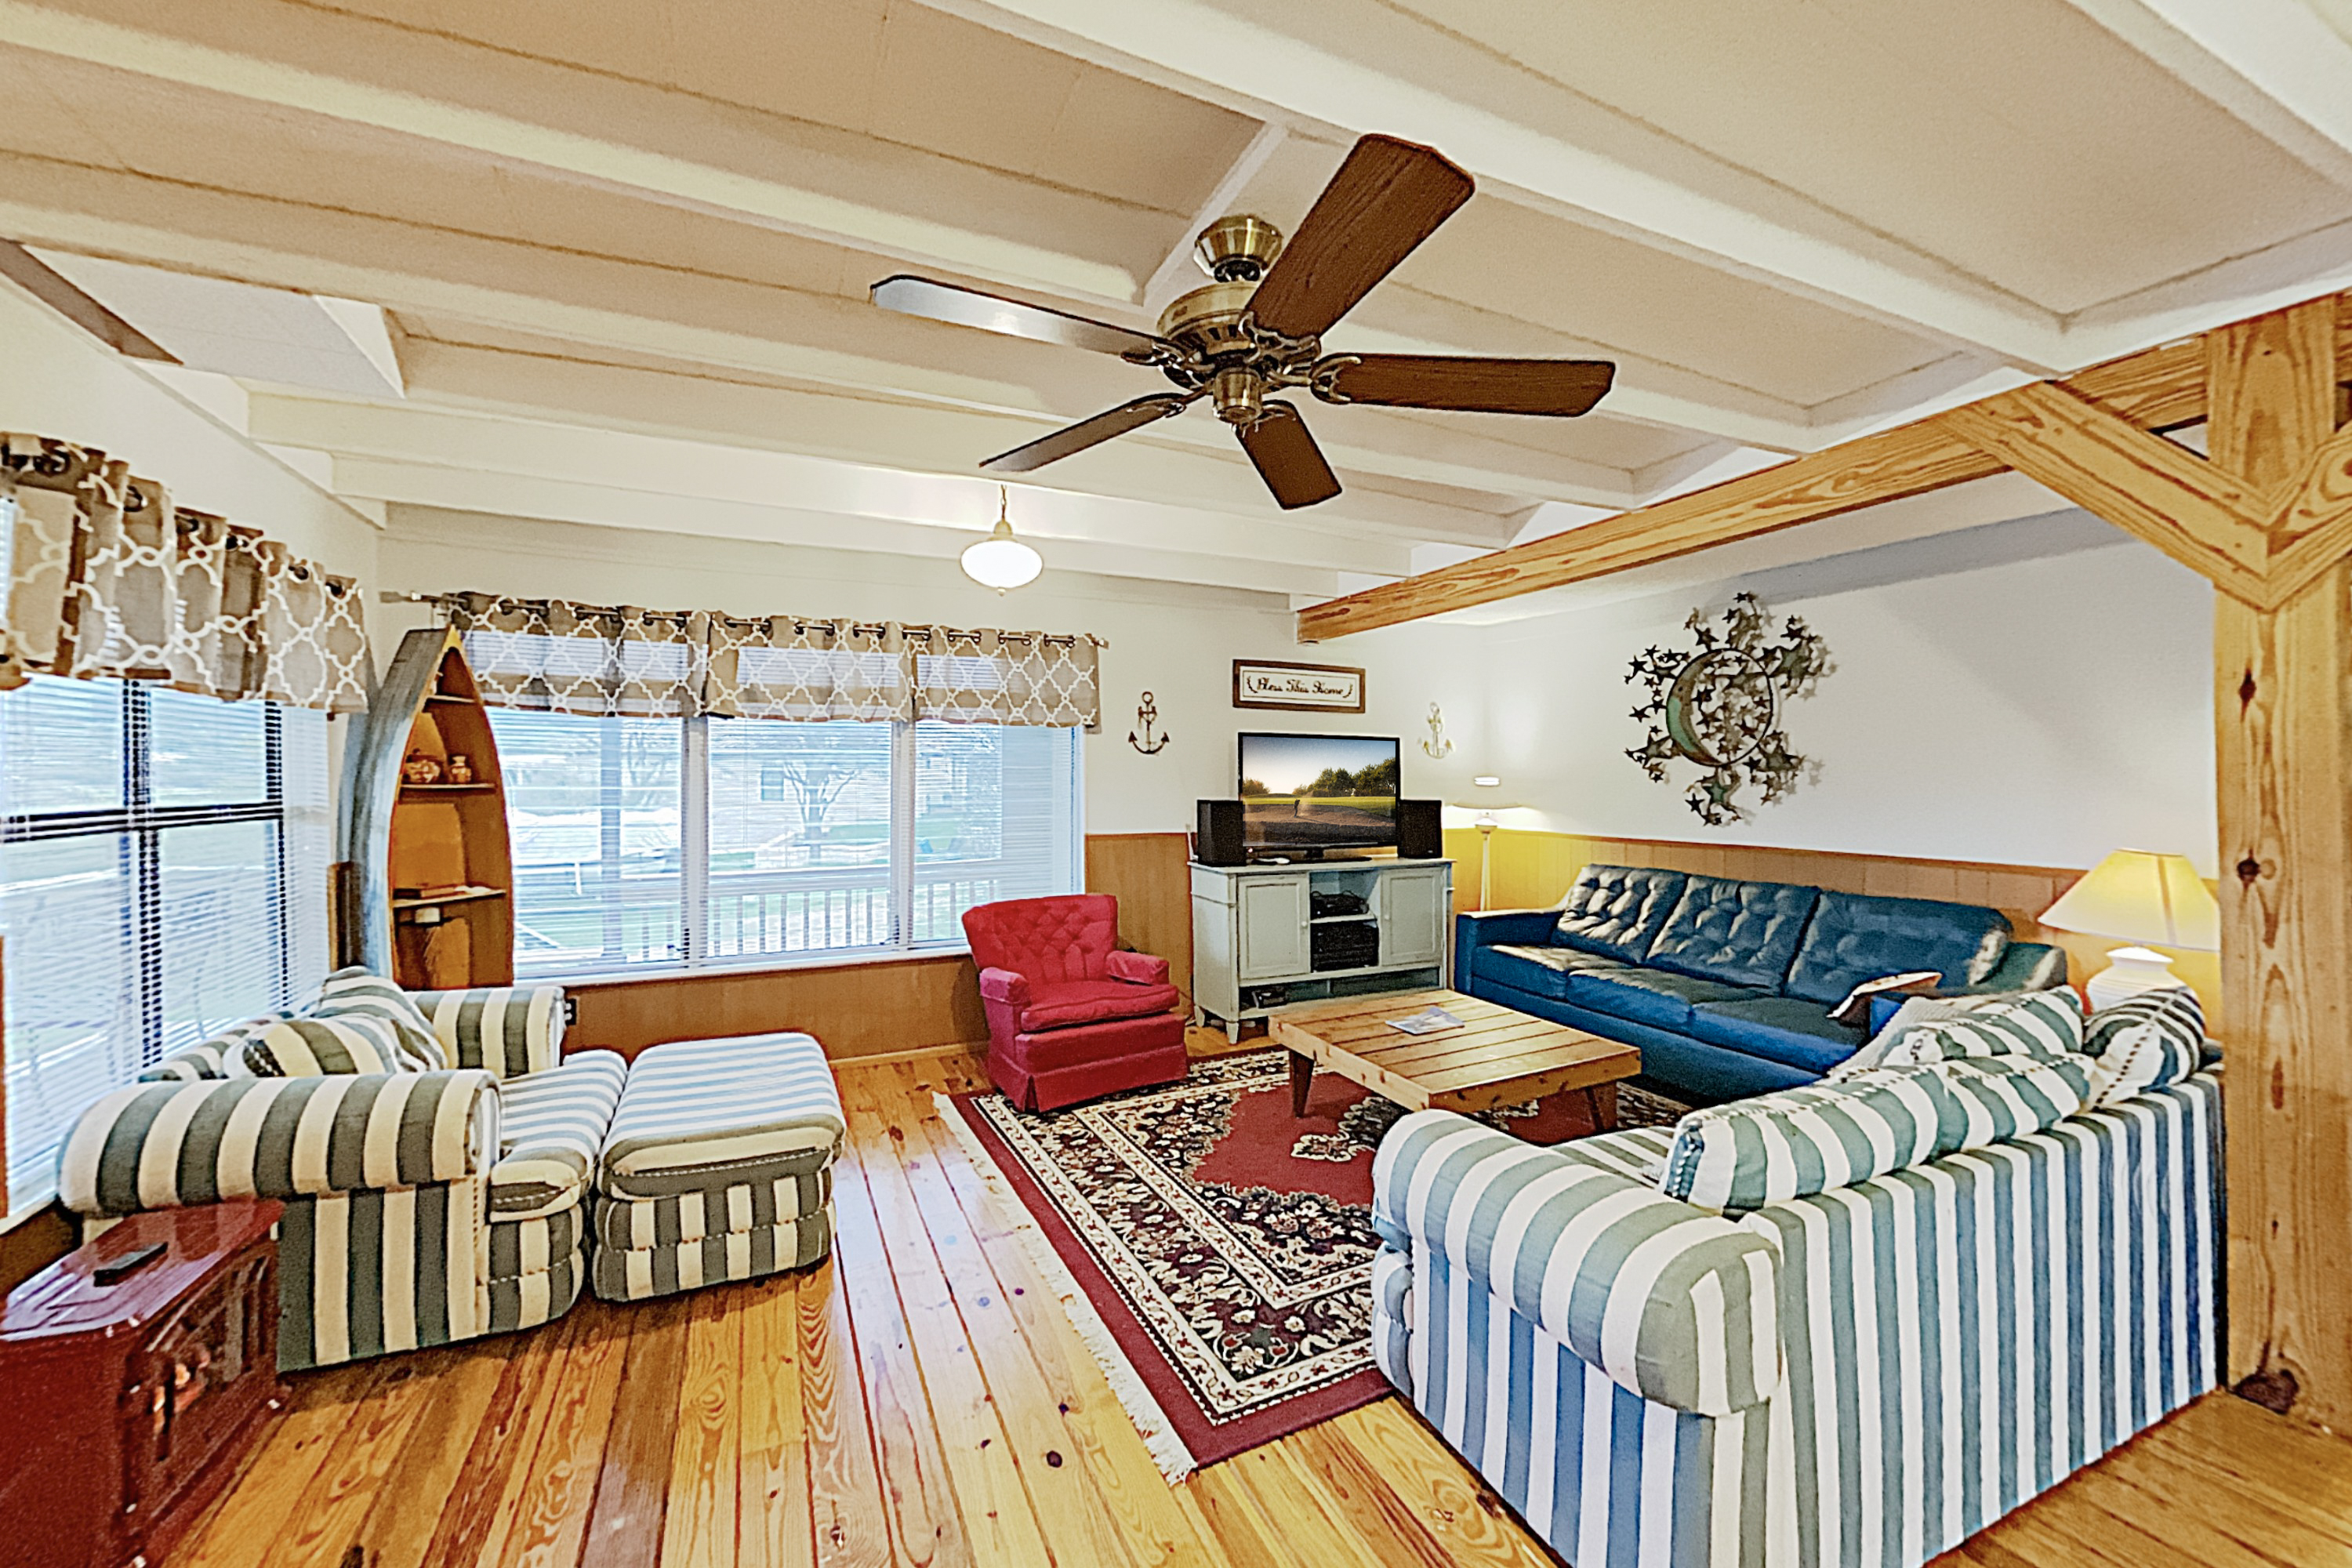 Burnet TX Vacation Rental Welcome to Burnet!